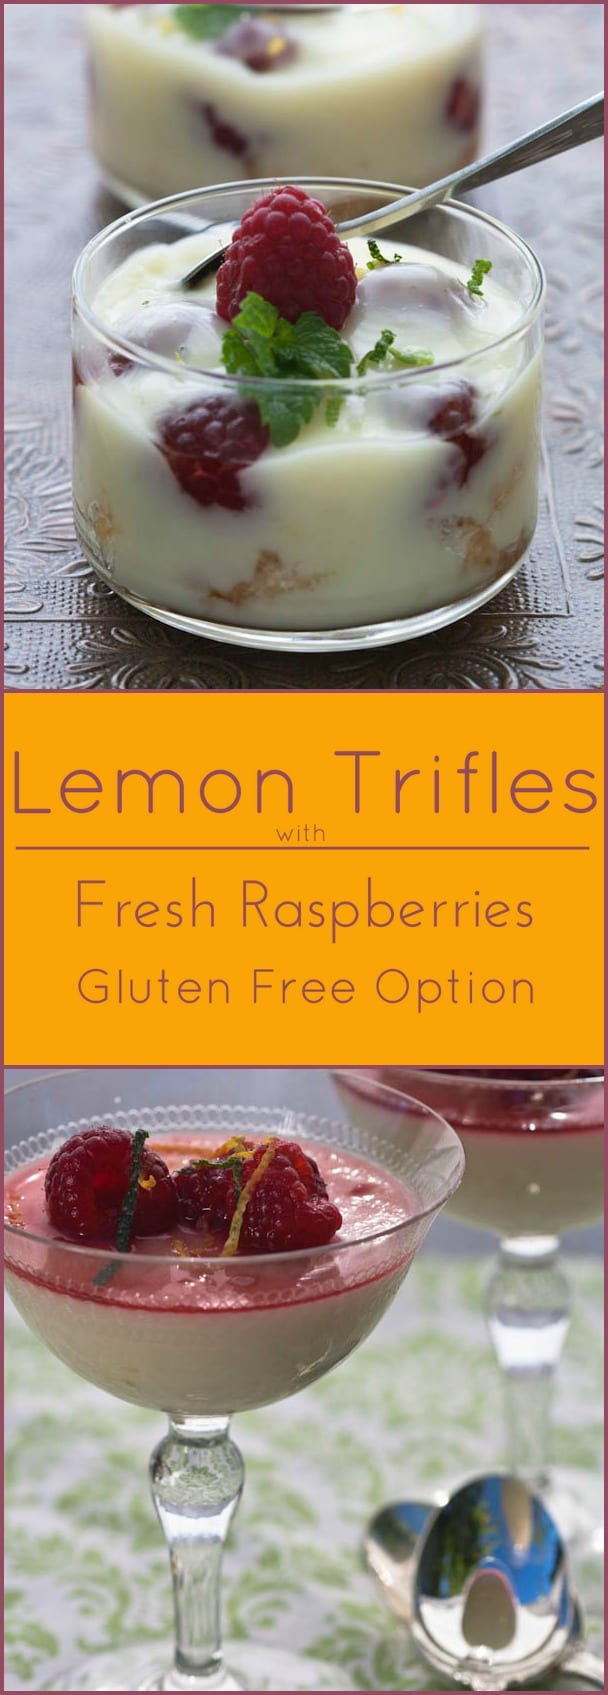 Easy Lemon Trifles with Angel Food Cake and Fresh Raspberries. Gluten free option too!